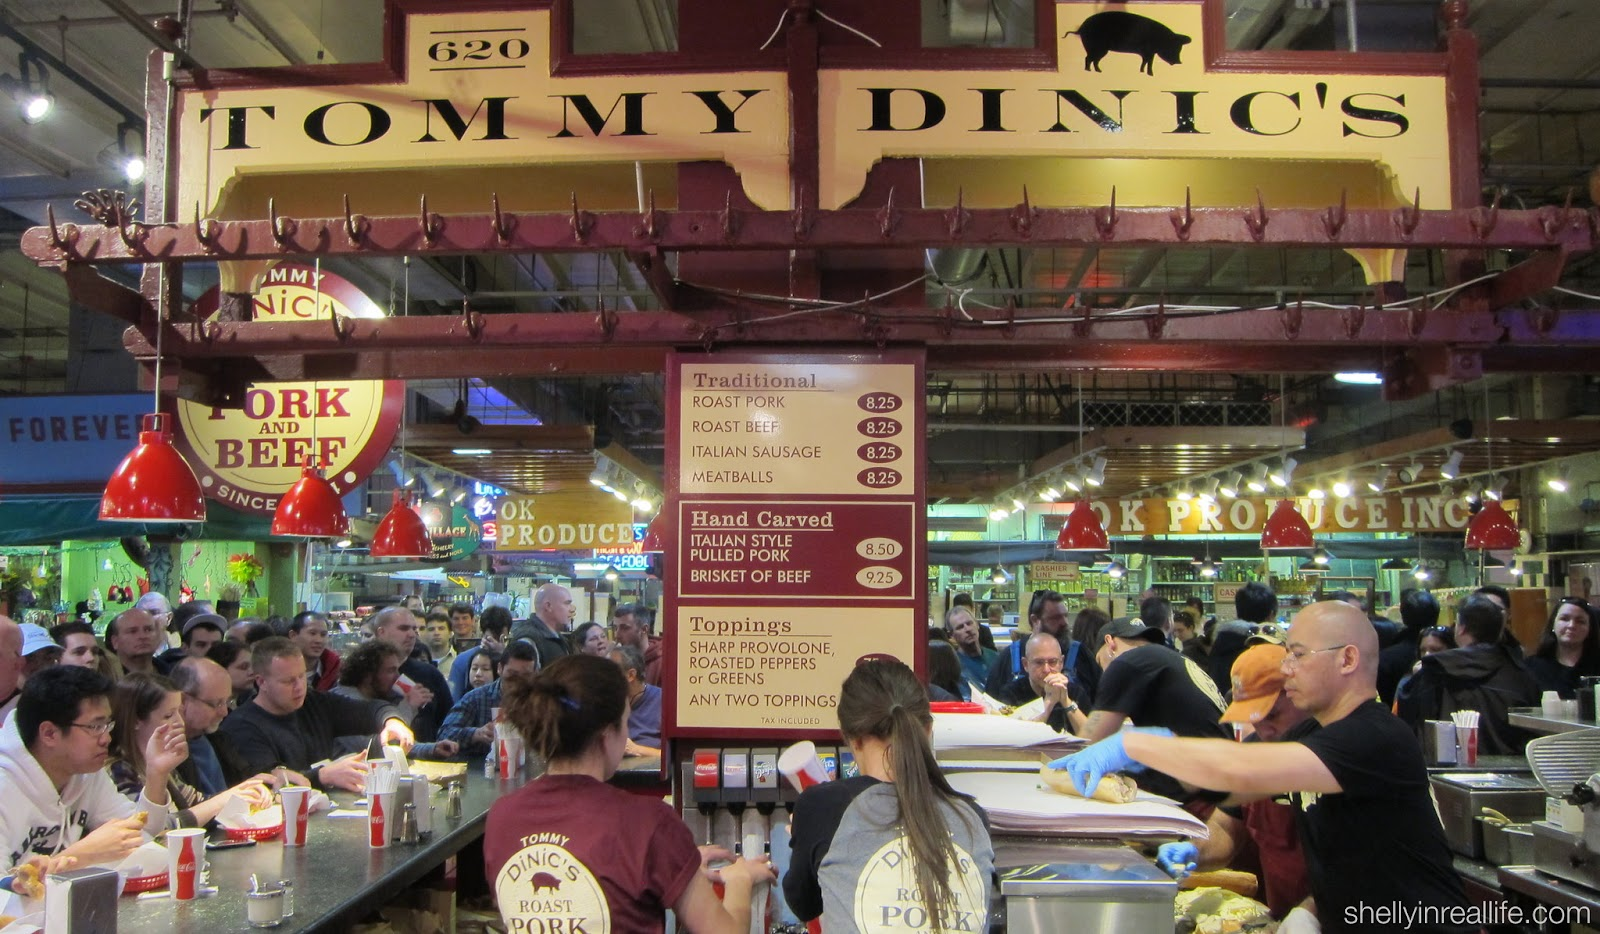 Customers Wrap Around 2 Sides Of Dinic S Booth With Lucky Patrons Eating Away At The Counters